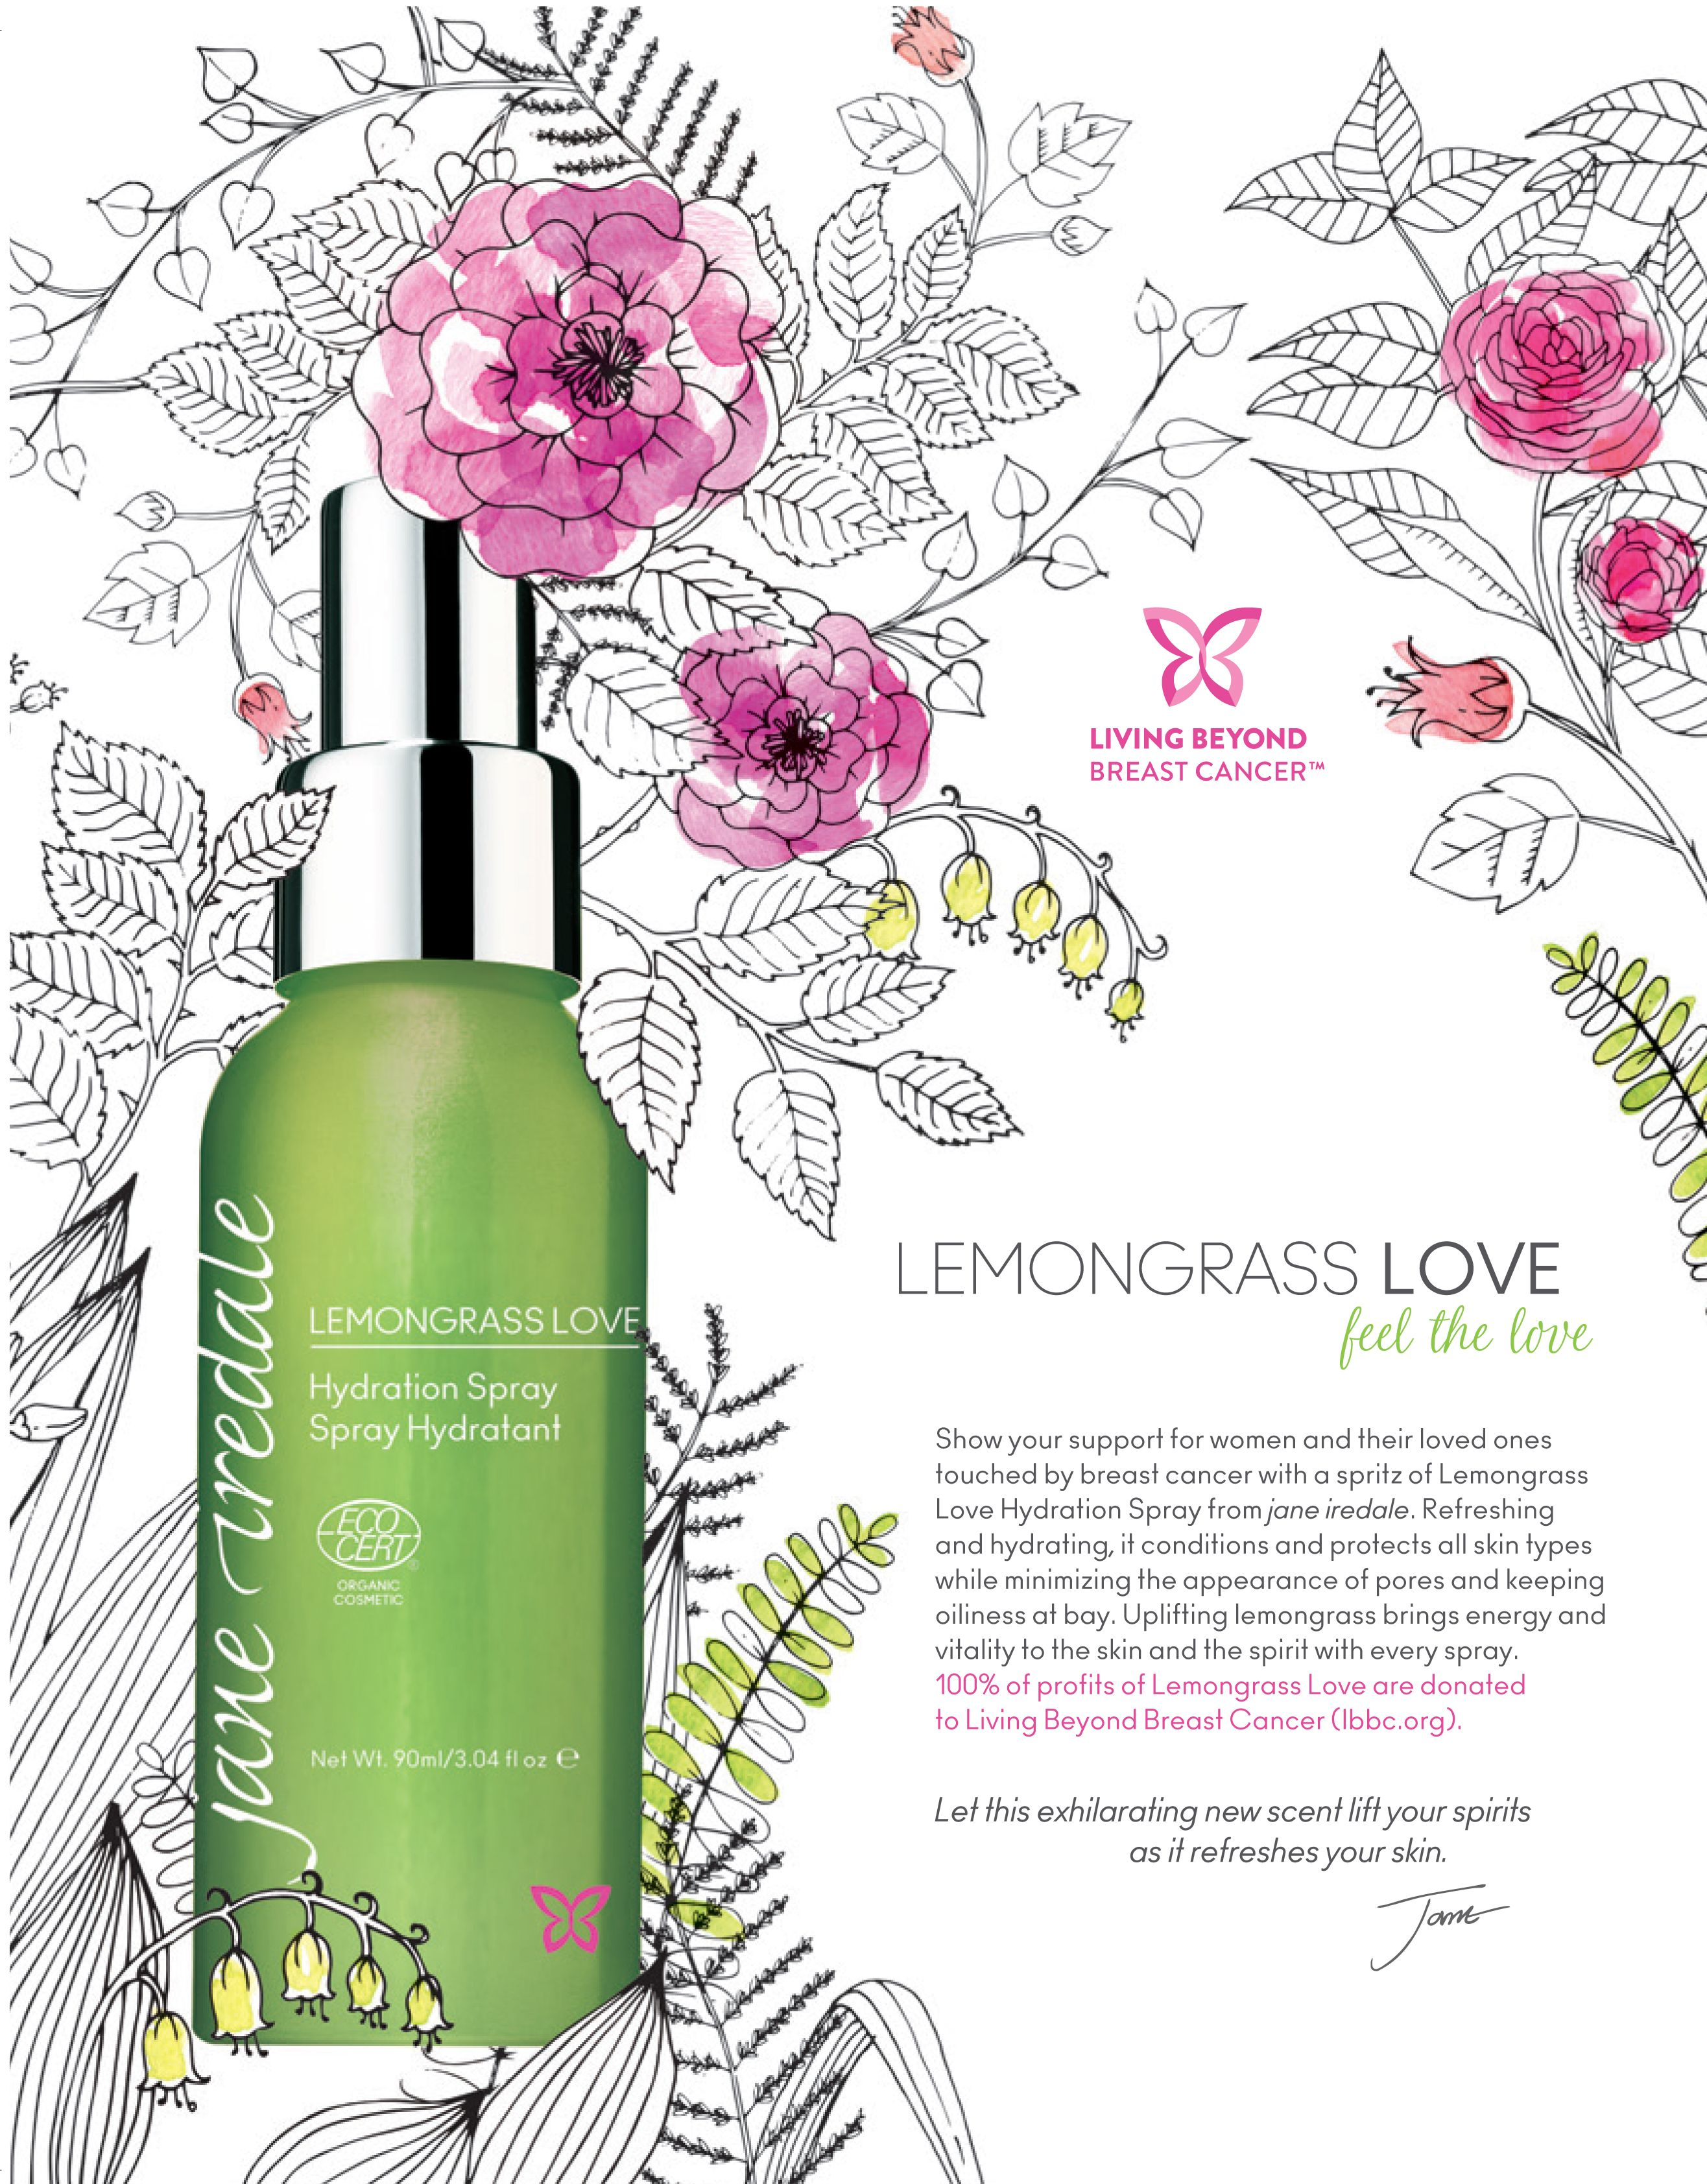 For our Hydration Spray lovers, this new Lemongrass Love